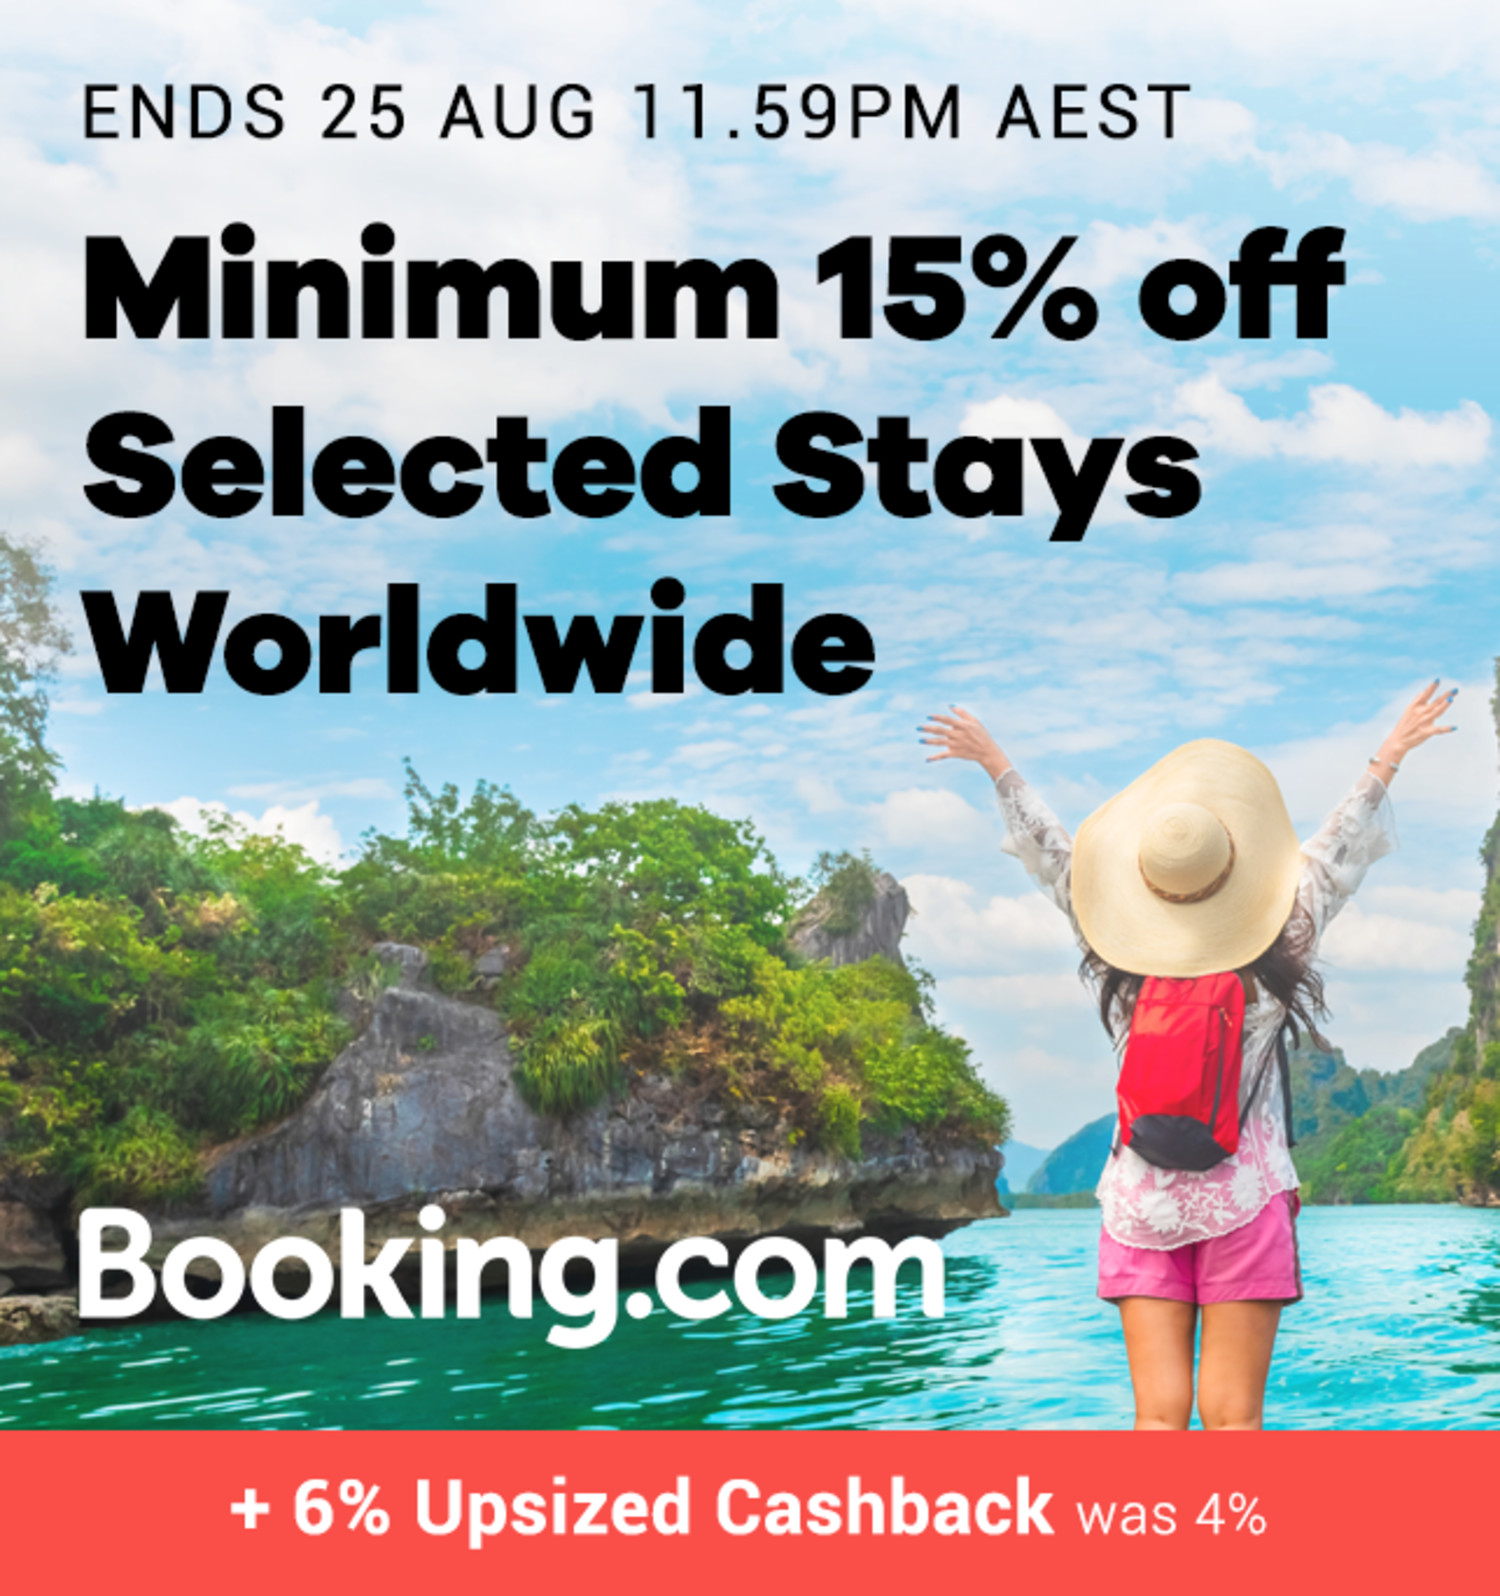 Booking.com - 6% Upsized Cashback